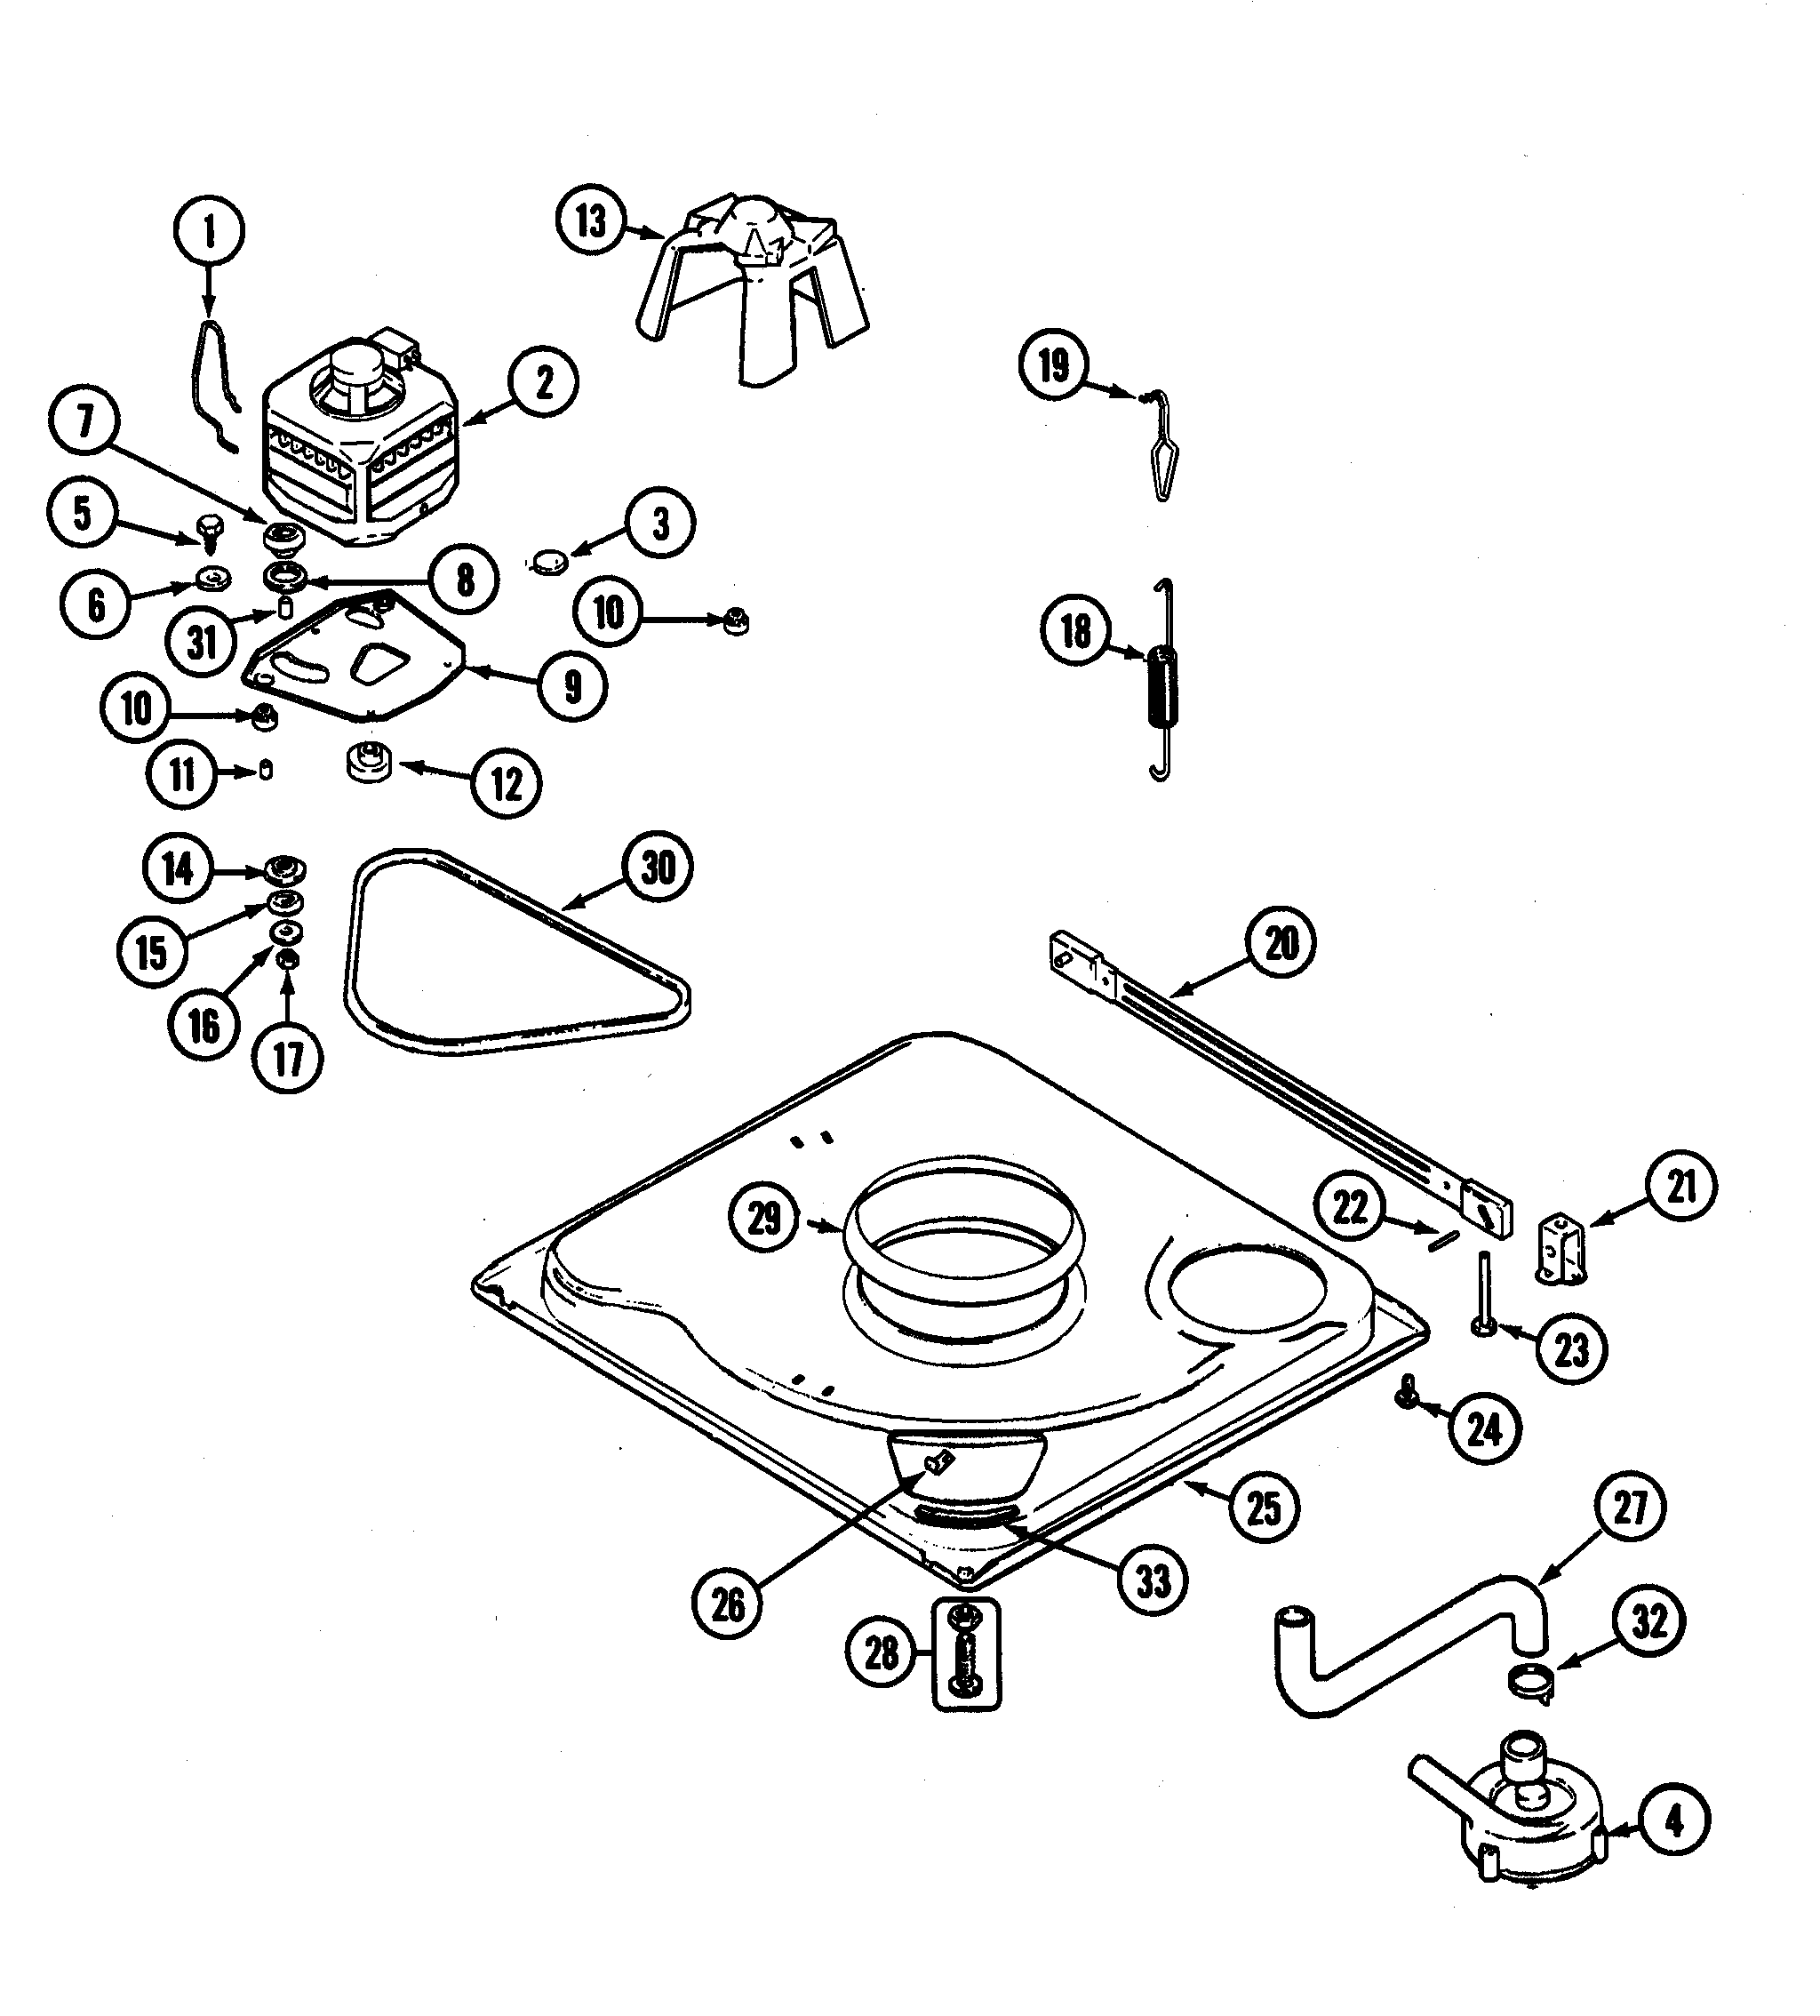 hight resolution of diagram further maytag dishwasher parts diagram on whirlpool cabrio diagram likewise whirlpool cabrio washer parts diagram further